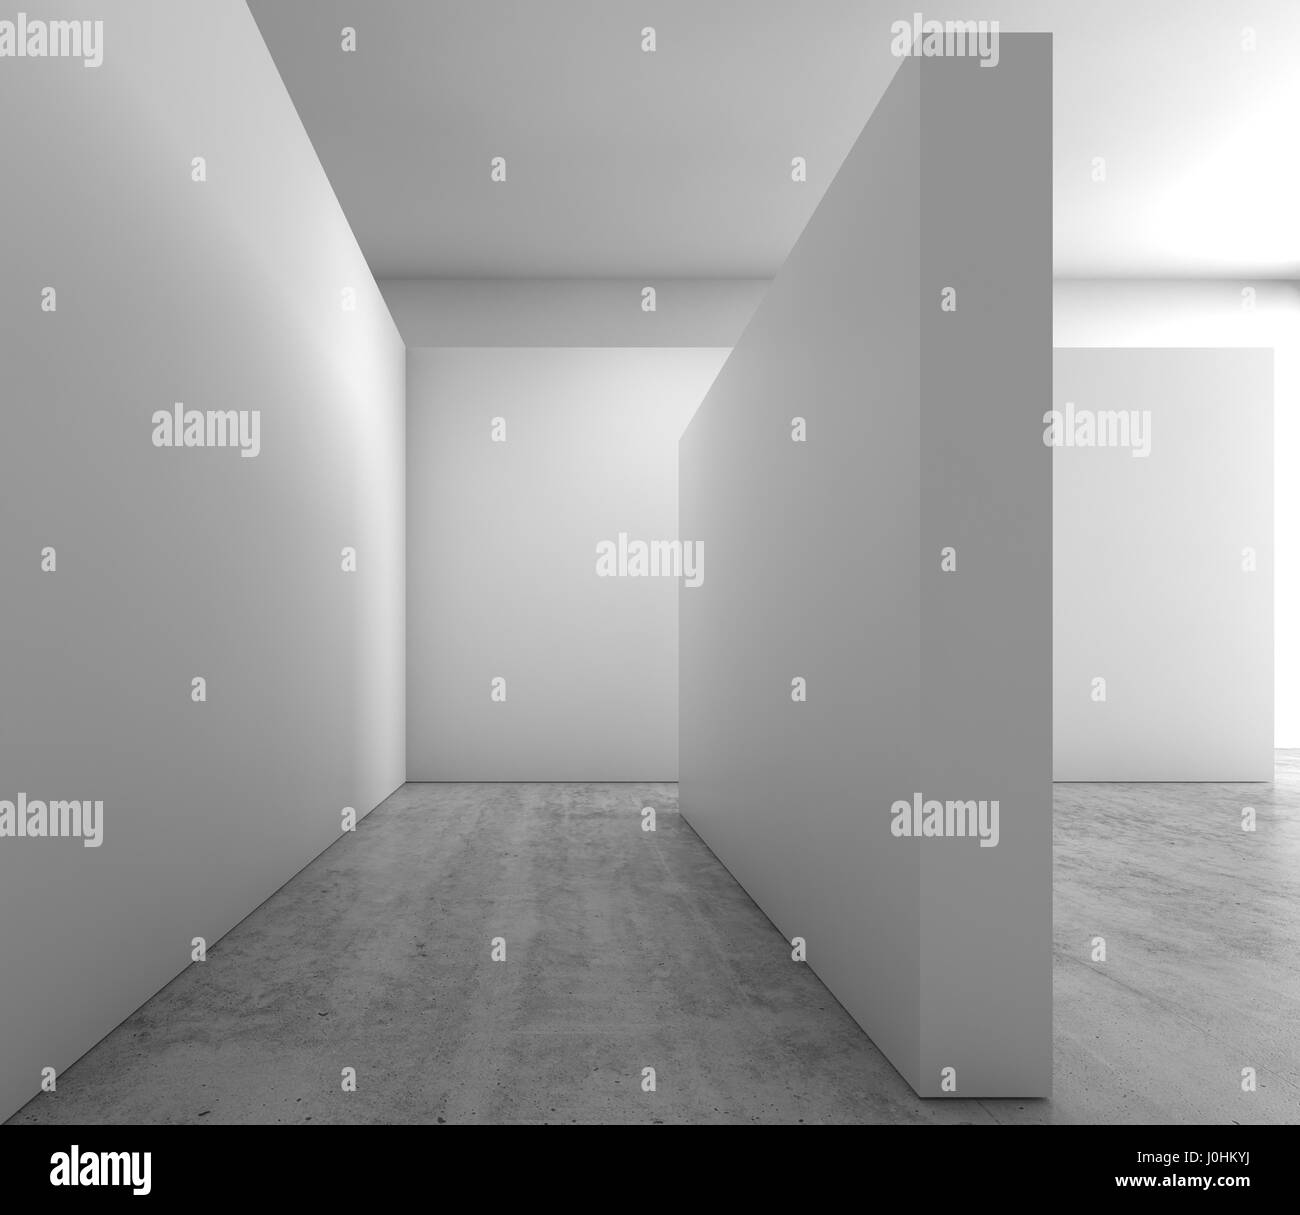 abstract empty interior background blank white walls installation on concrete floor contemporary architecture stock